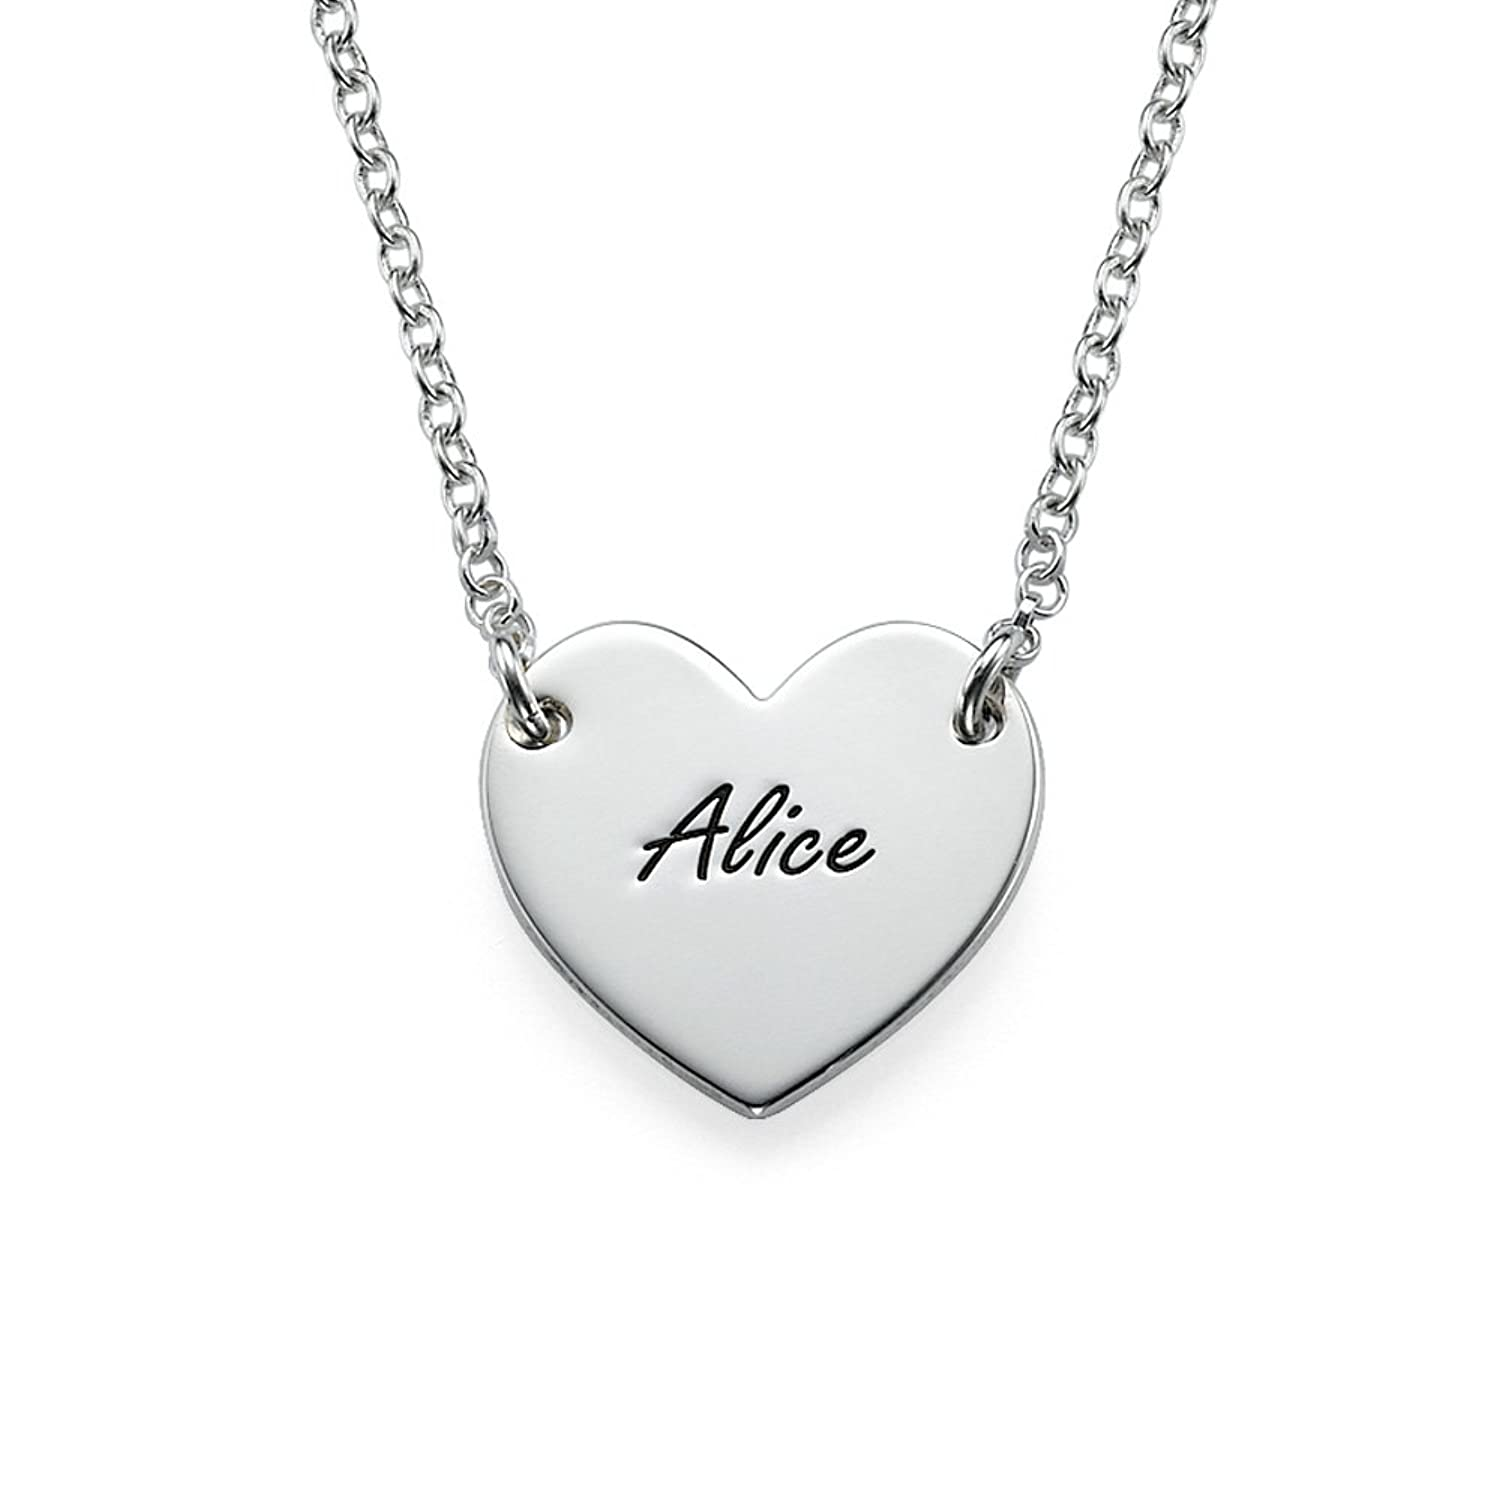 engraved jewelry neckalace ca necklace dogtag personalized photo custom pendant img